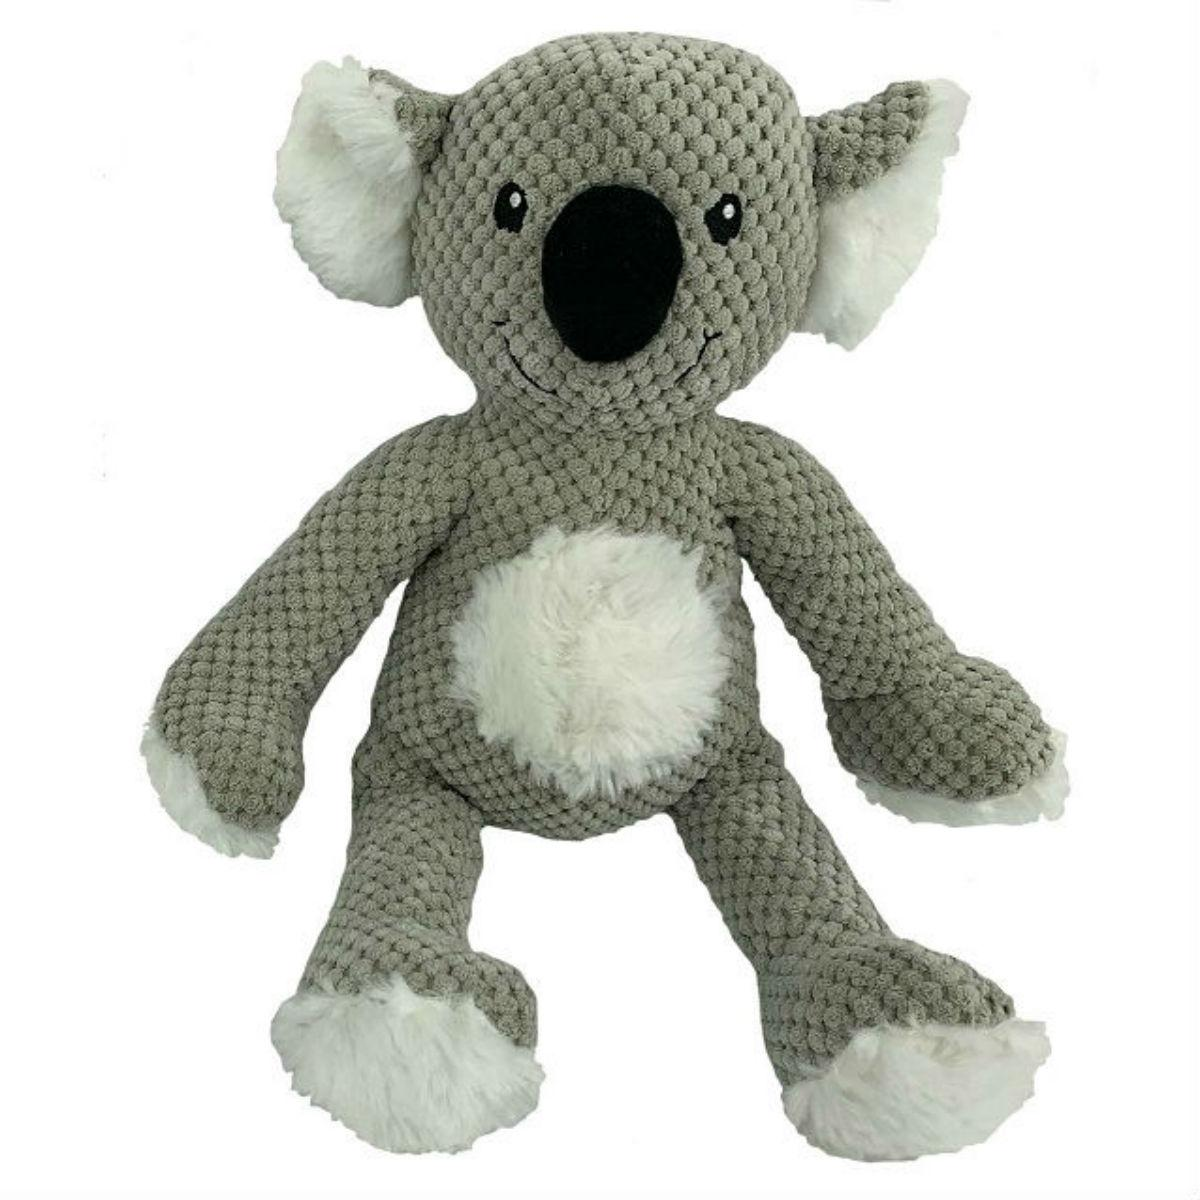 fabdog® Floppy Friends Dog Toy - Koala